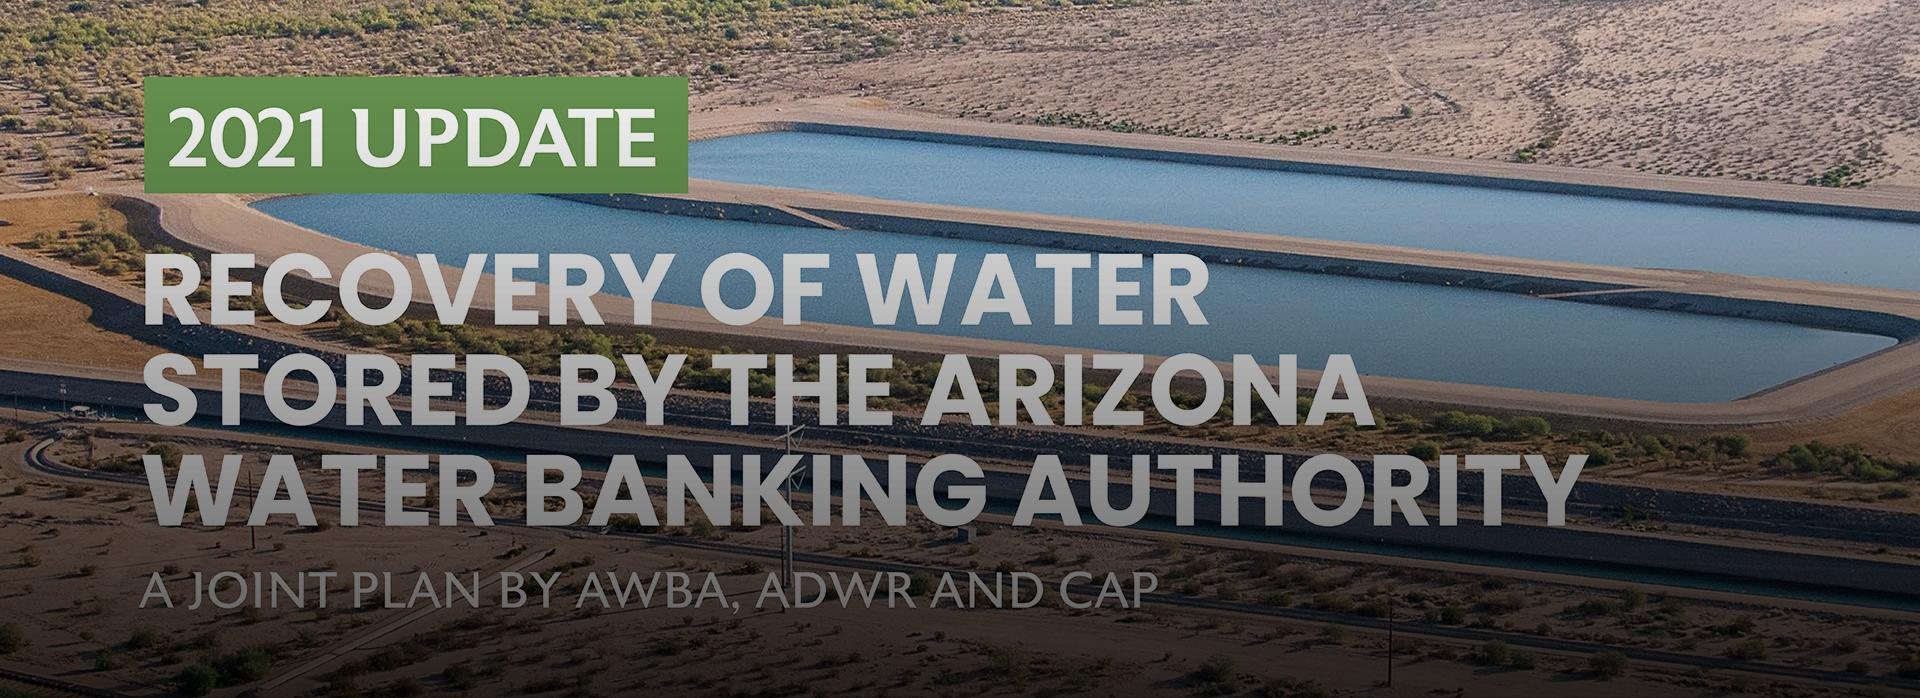 Recovery of Water Stored by the Arizona Water Banking Authority